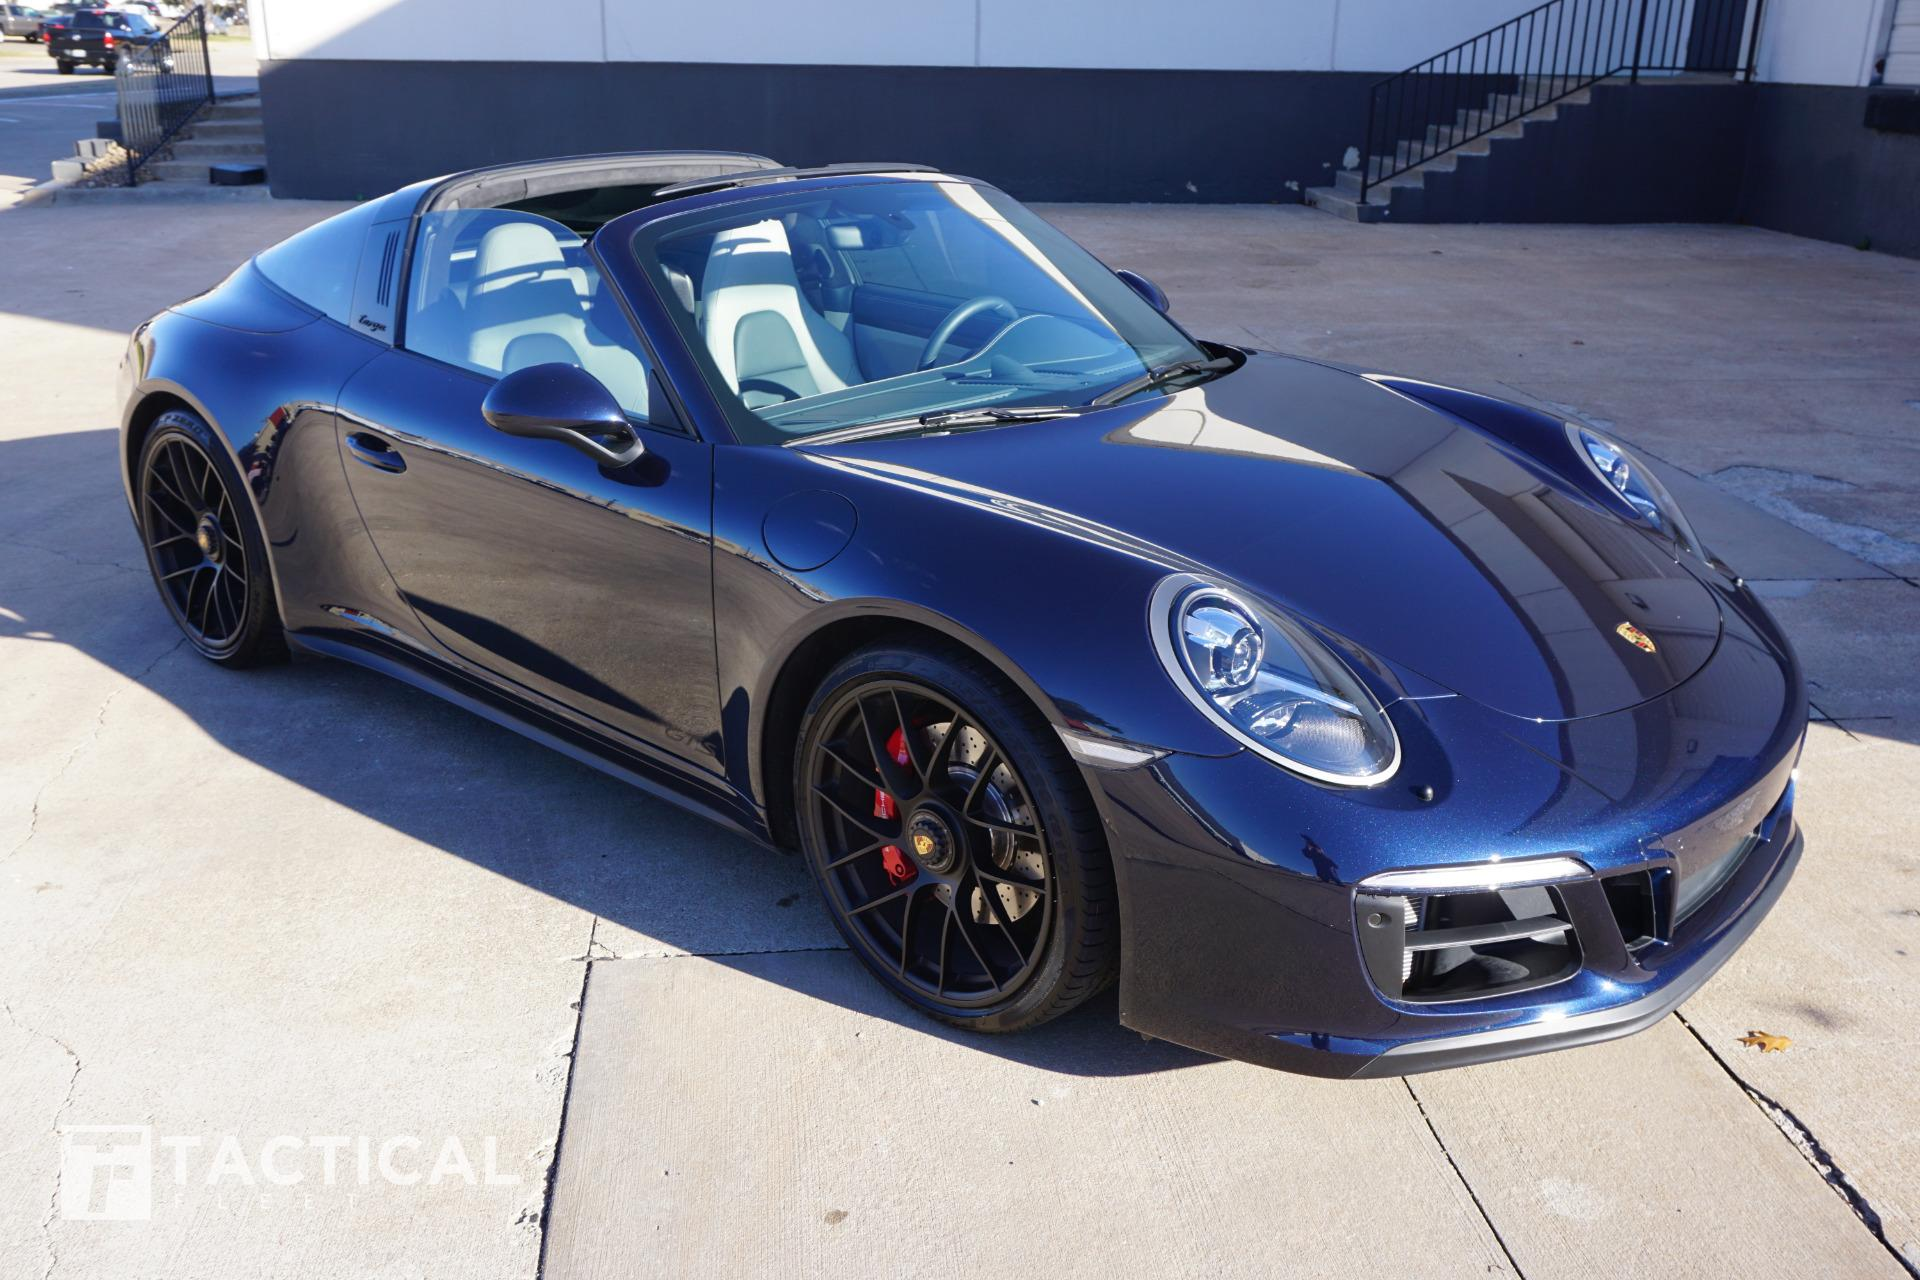 Used 2018 Porsche 911 Targa 4 Gts For Sale 154 900 Tactical Fleet Stock Tf1077